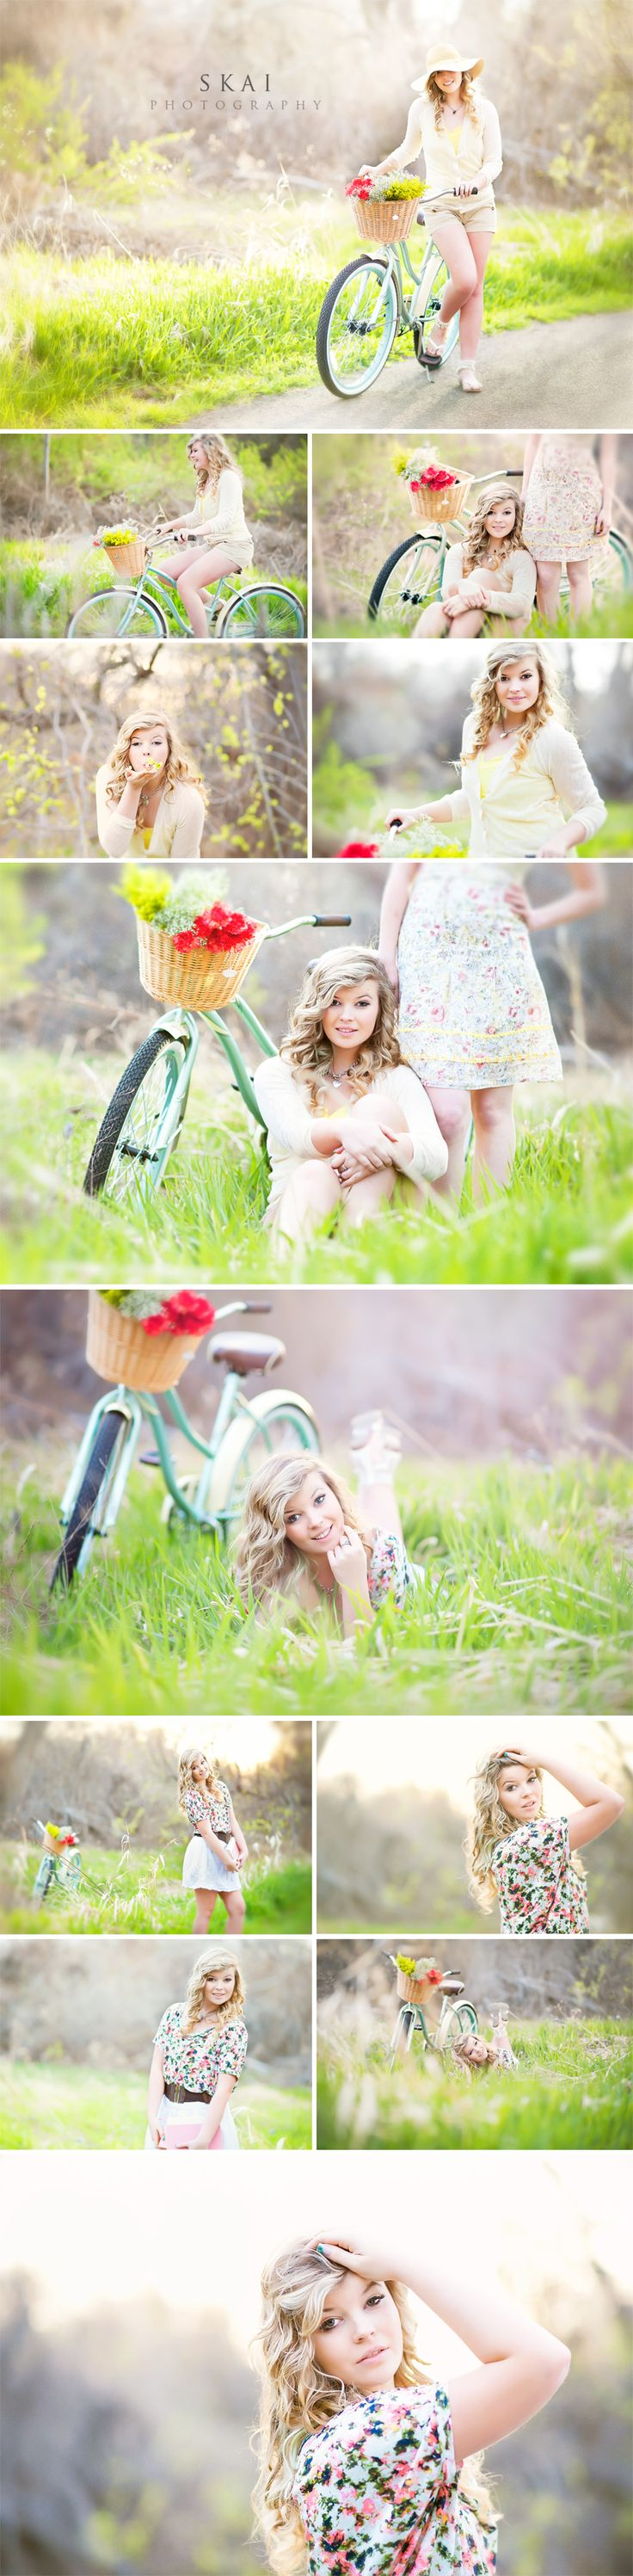 Great female poses for senior high.Senior Pictures, Photos Ideas, Vintage Bikes, Female Poses, Senior Photos, Photos Shoots, Senior Pics, Senior Portraits, Senior Girls